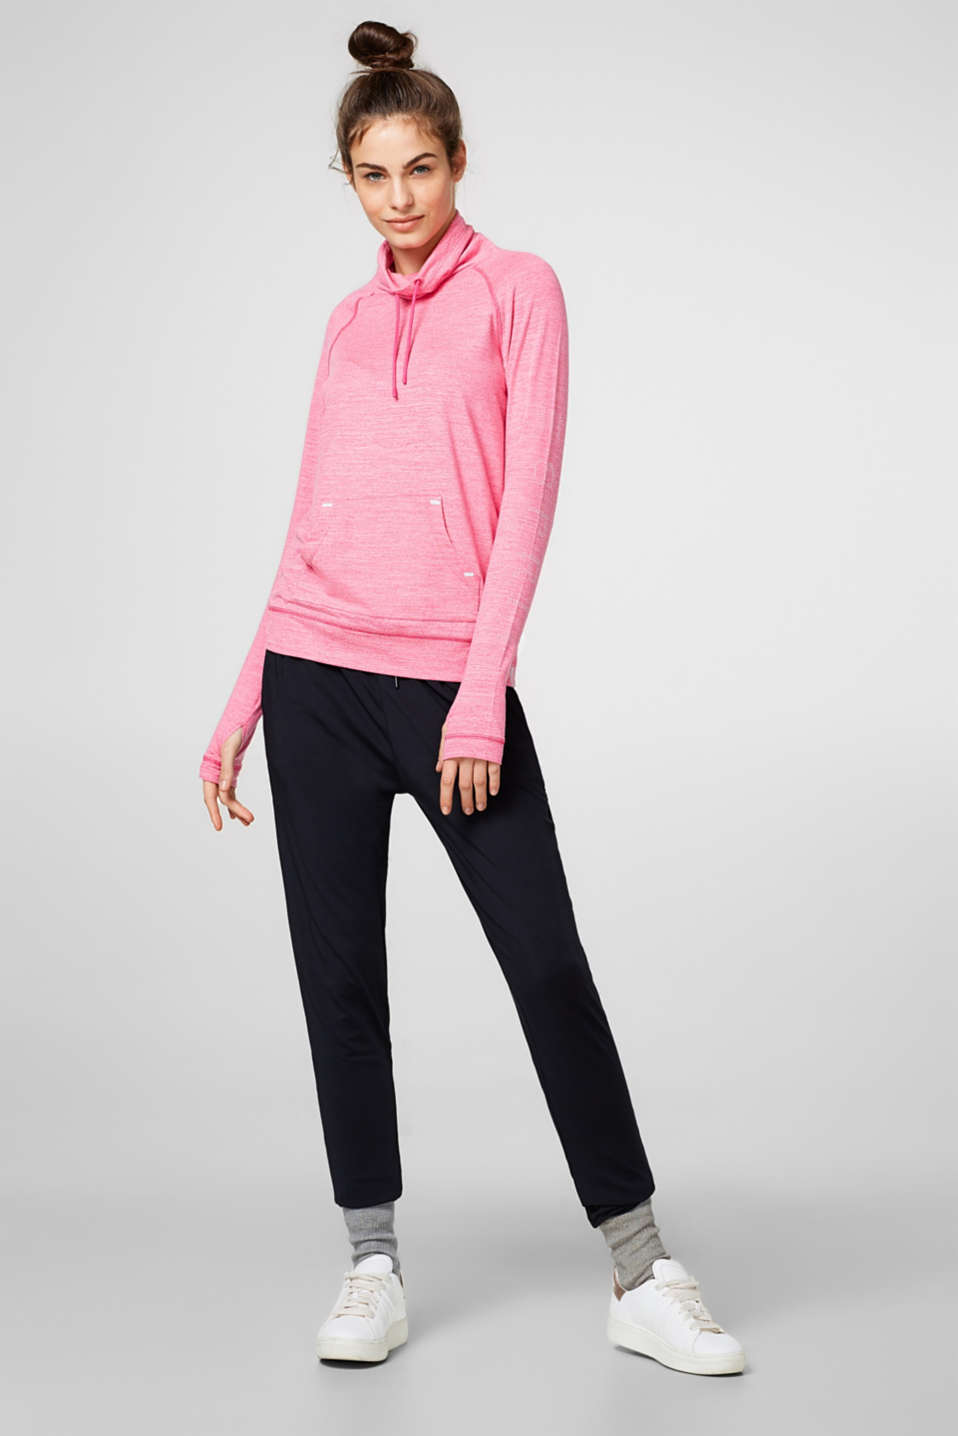 Esprit - Melange turtleneck long sleeve top, E-DRY